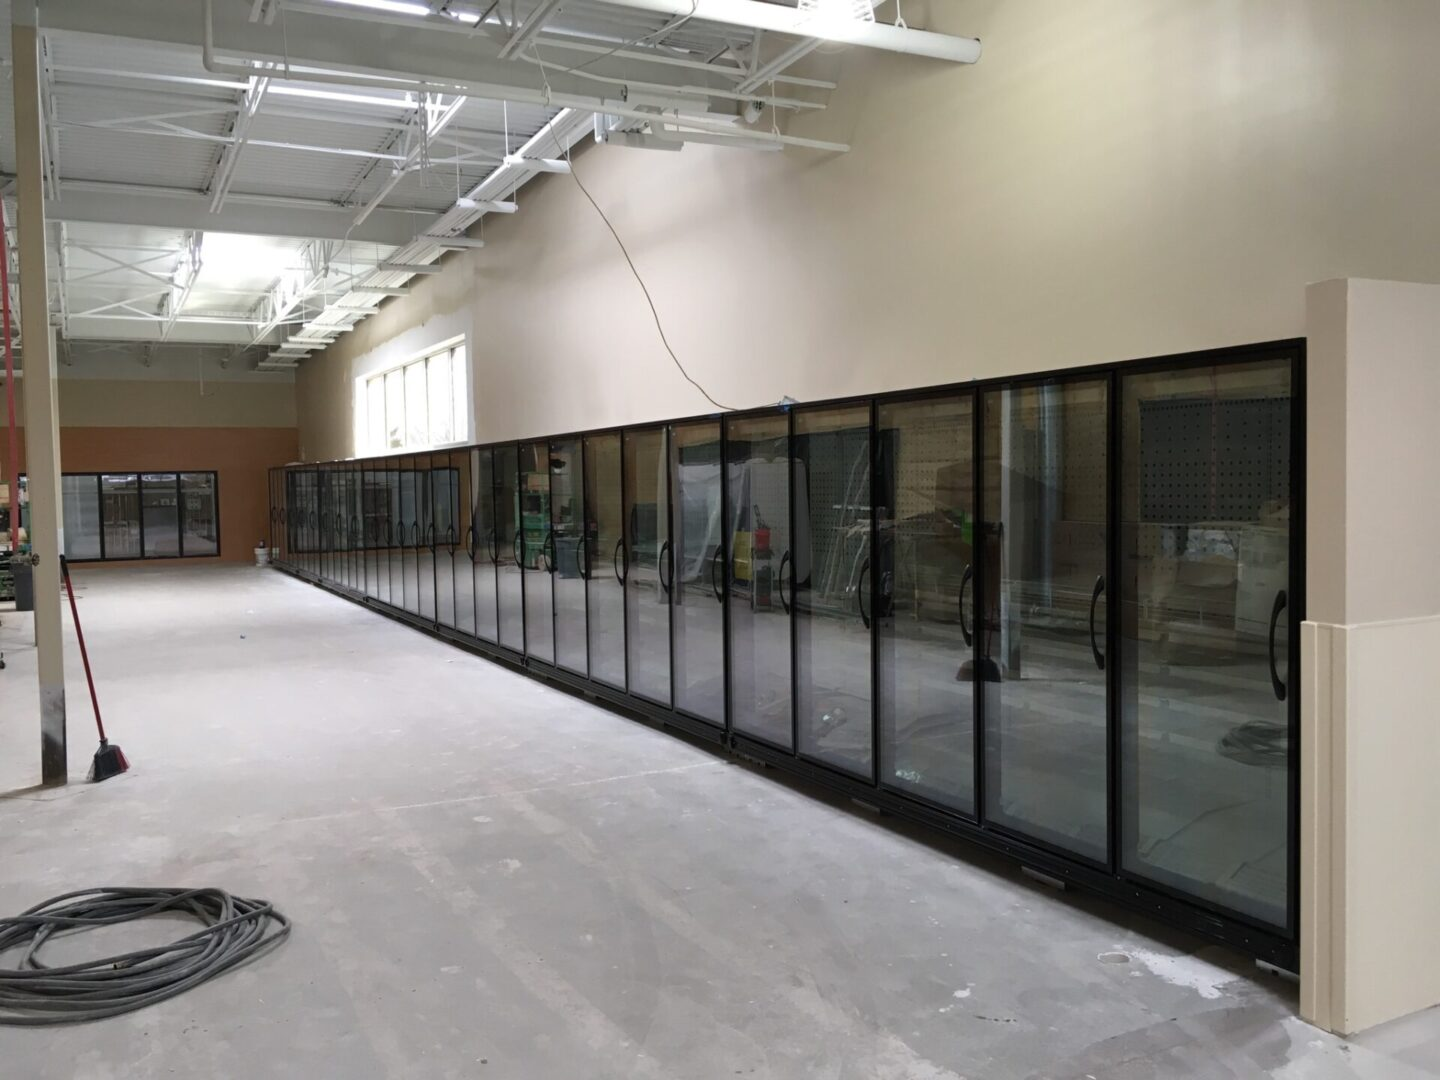 Zero-Zone RVLC 19drs of Frozen Food & RVMC 10-French Doors of Dairy & RVMC 6drs of Produce